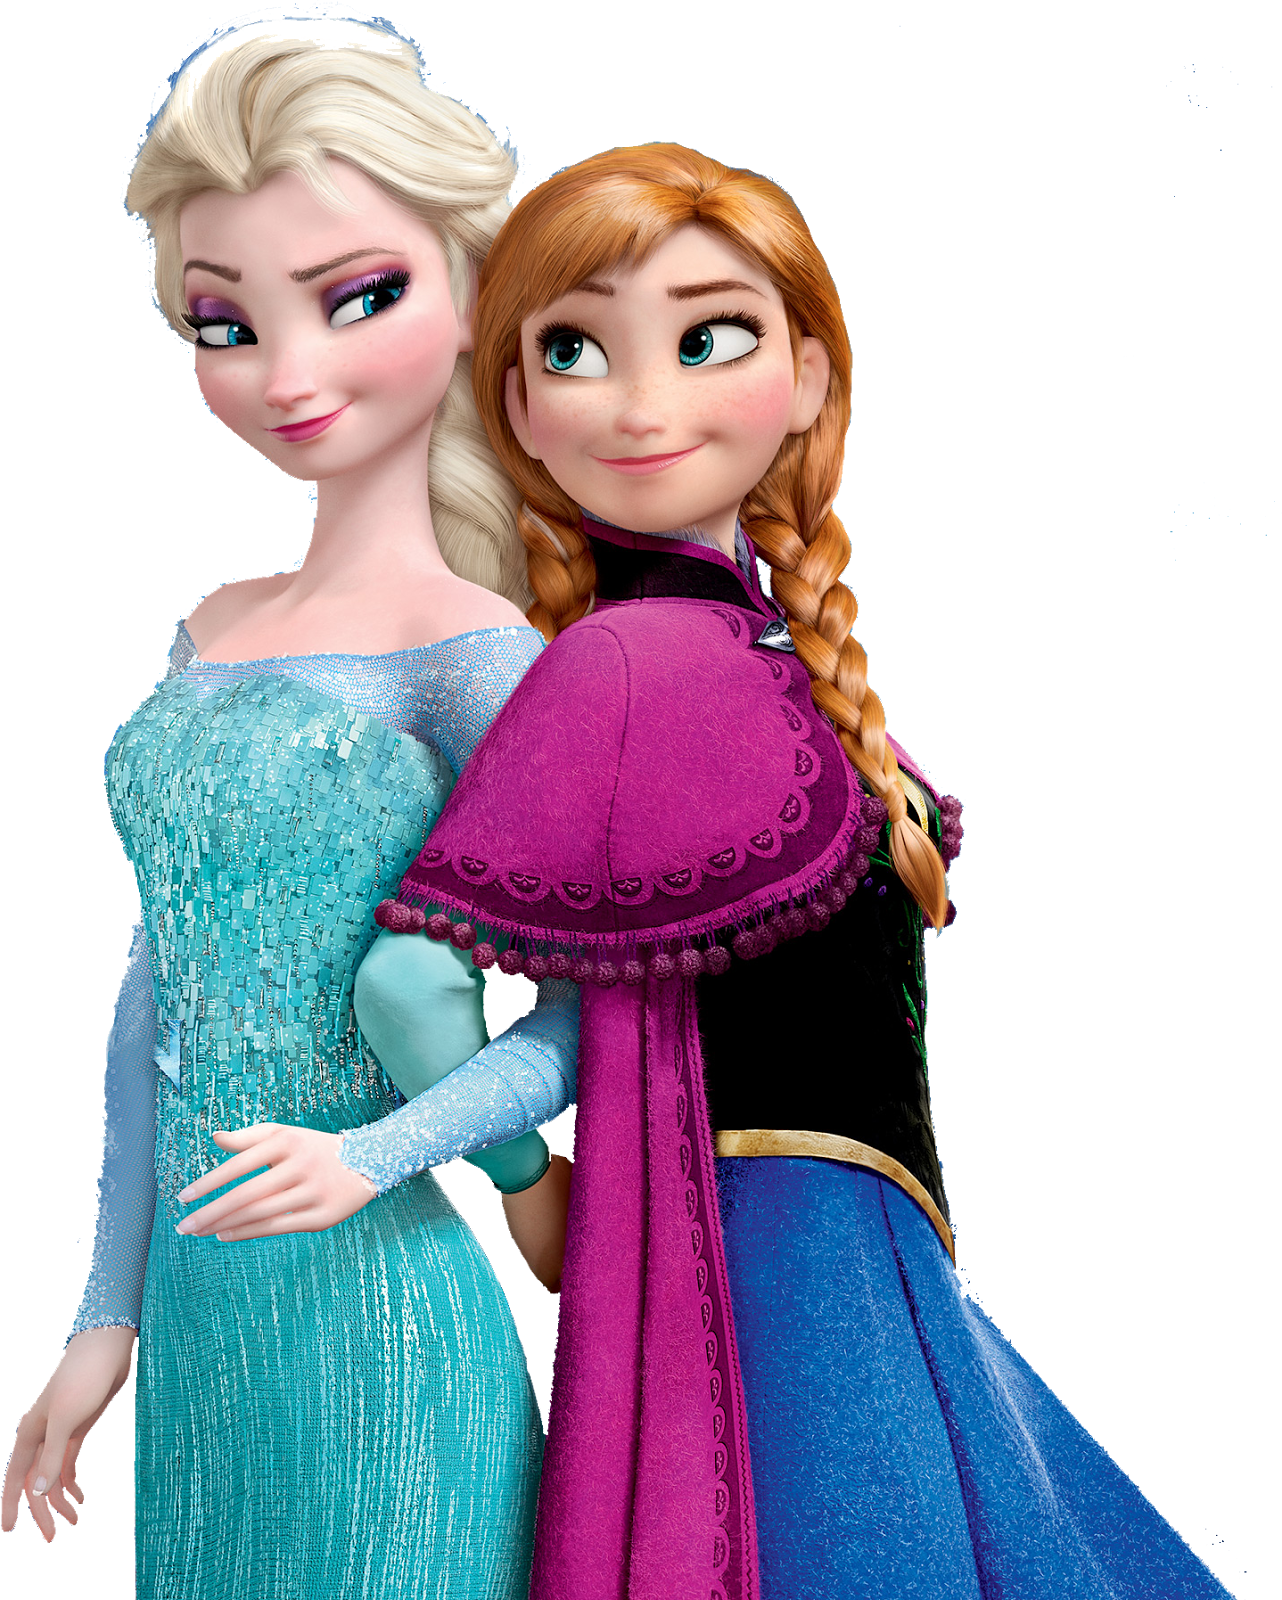 Frozen clipart frozen sisters. Anna and elsa png